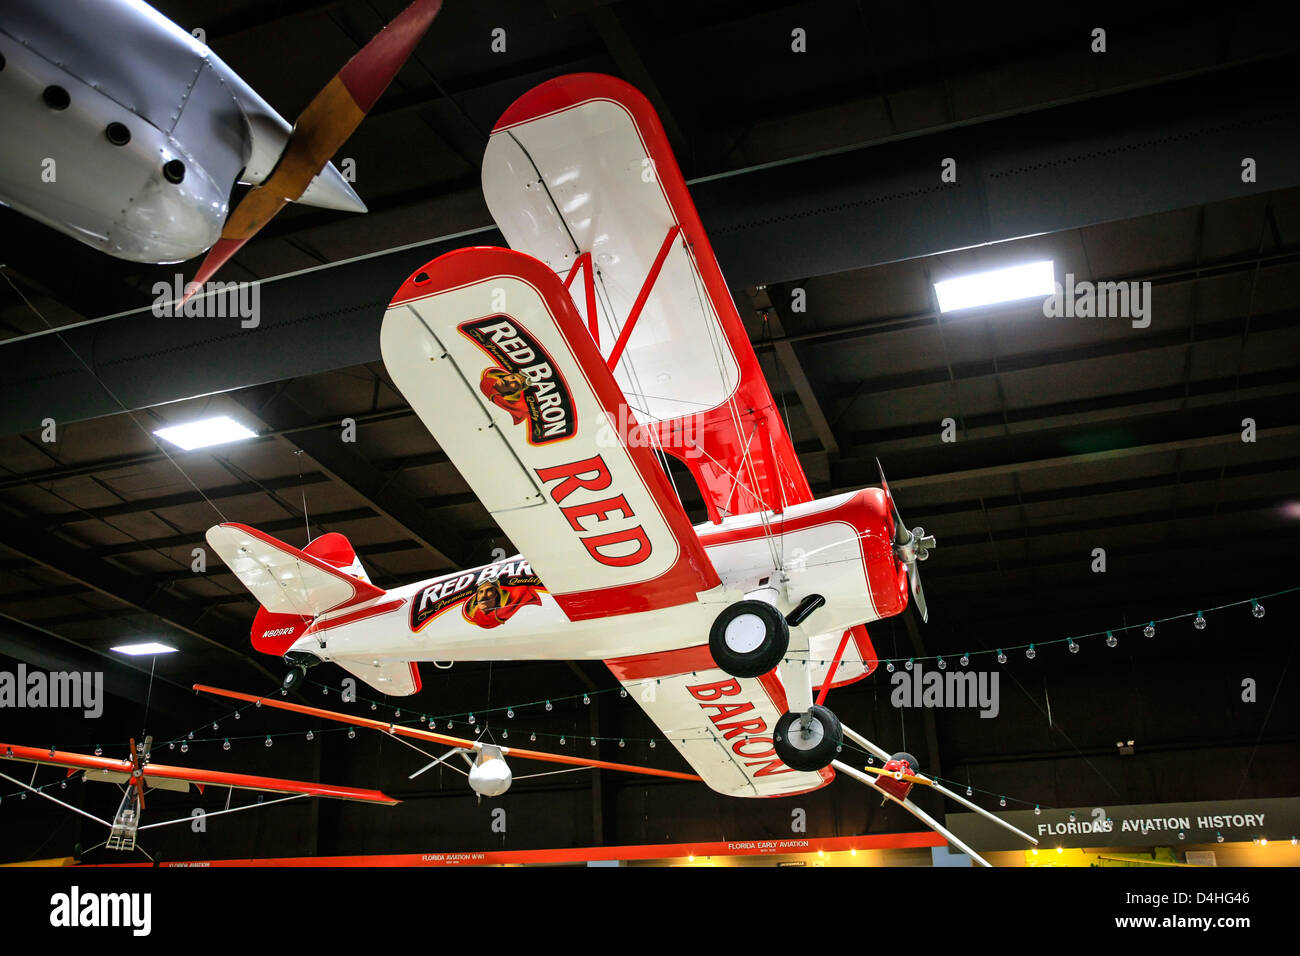 A Red Baron Stearman hands above other exhibits inside the Sun n Fun Florida Air Museum in Lakeland - Stock Image